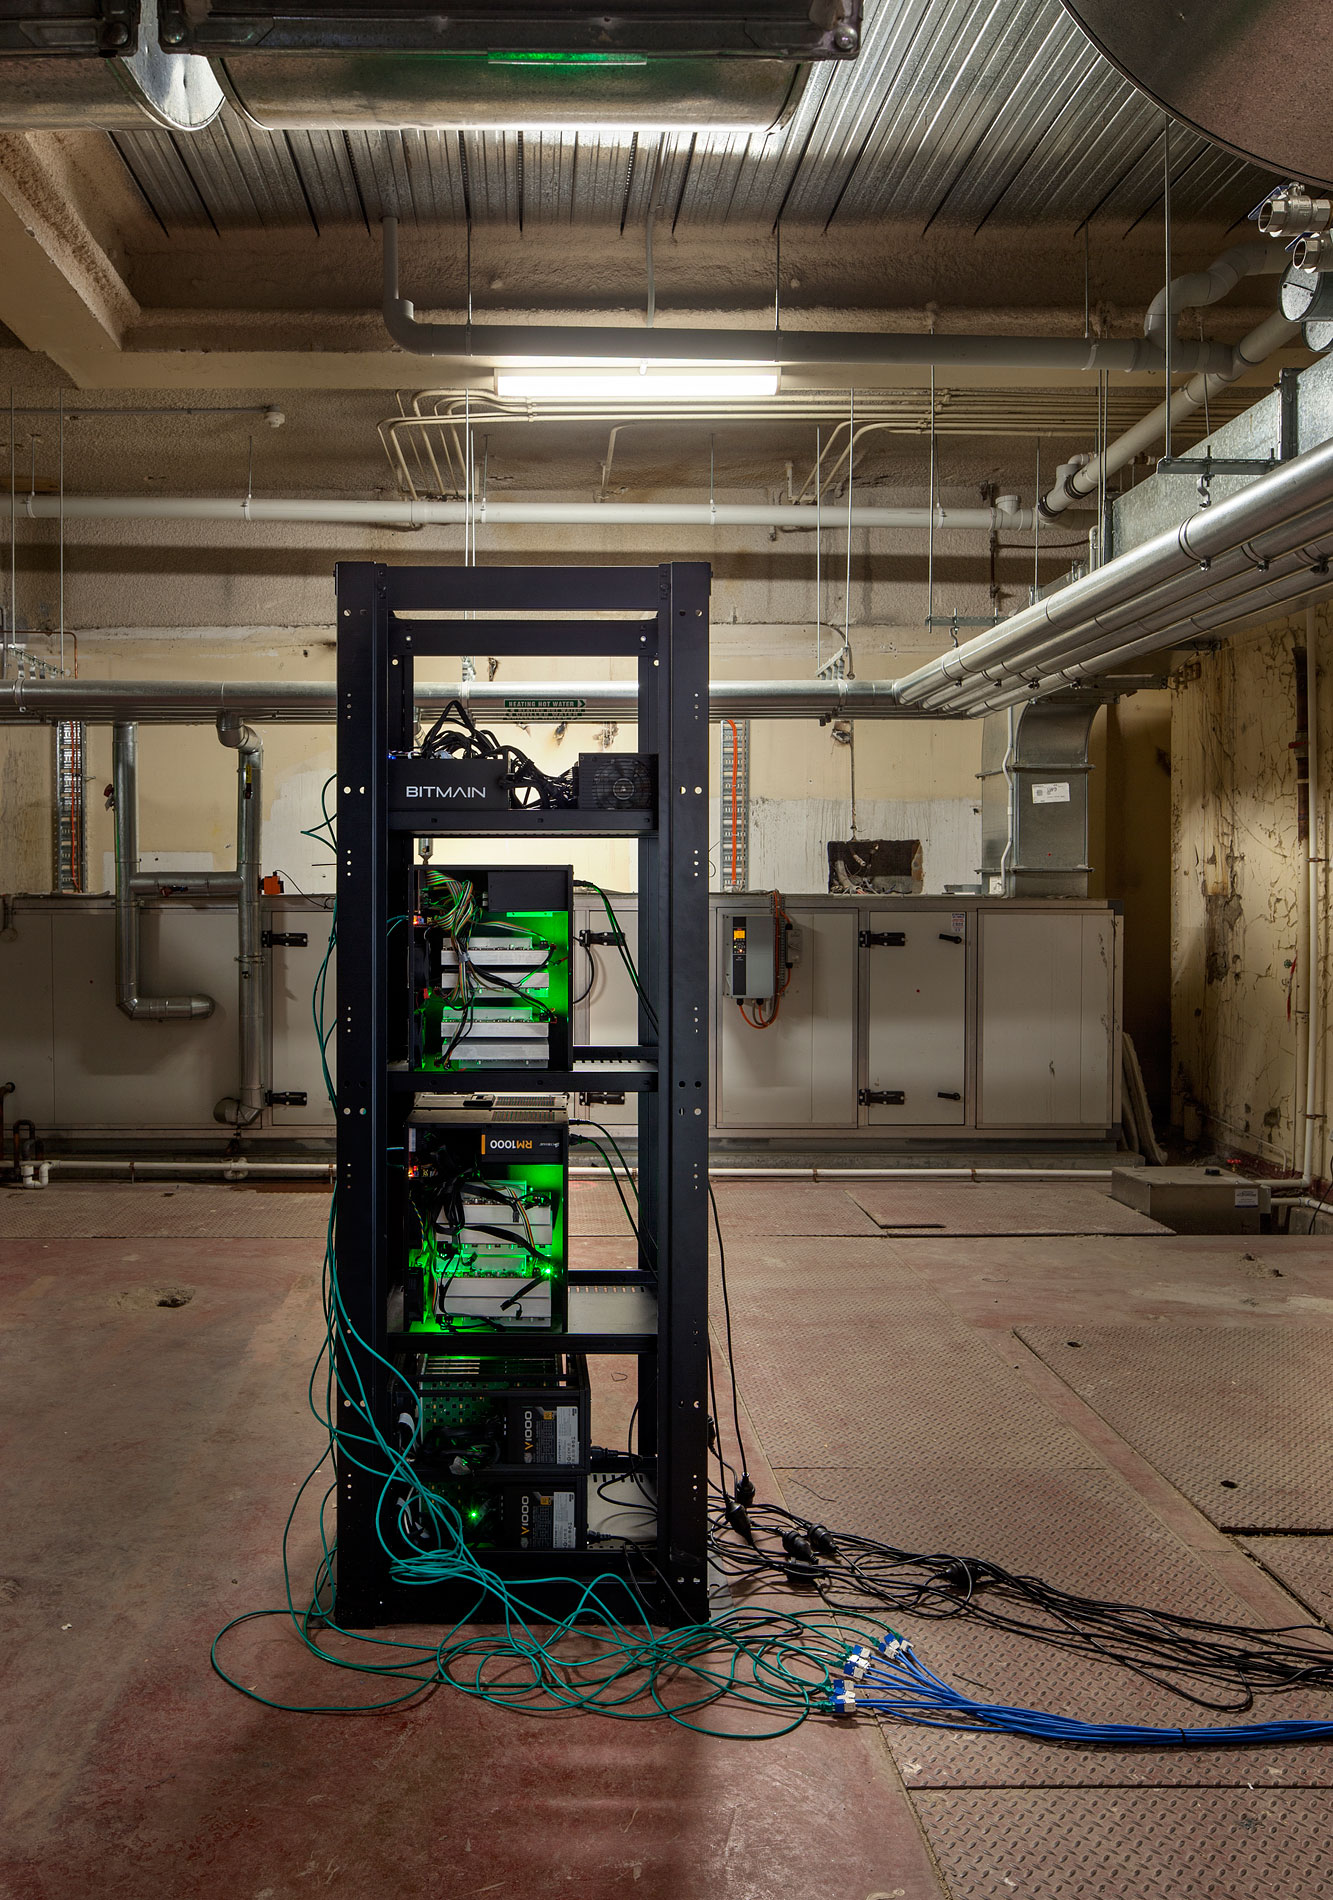 Nicholas Mangan, *Limits to Growth*, 2016, 9 terrahash Bitcoin ASIC mining rig. Installation detail, basement boiler room of Monash University Museum of Art, Melbourne, 2016. Photographer: Andrew Curtis.